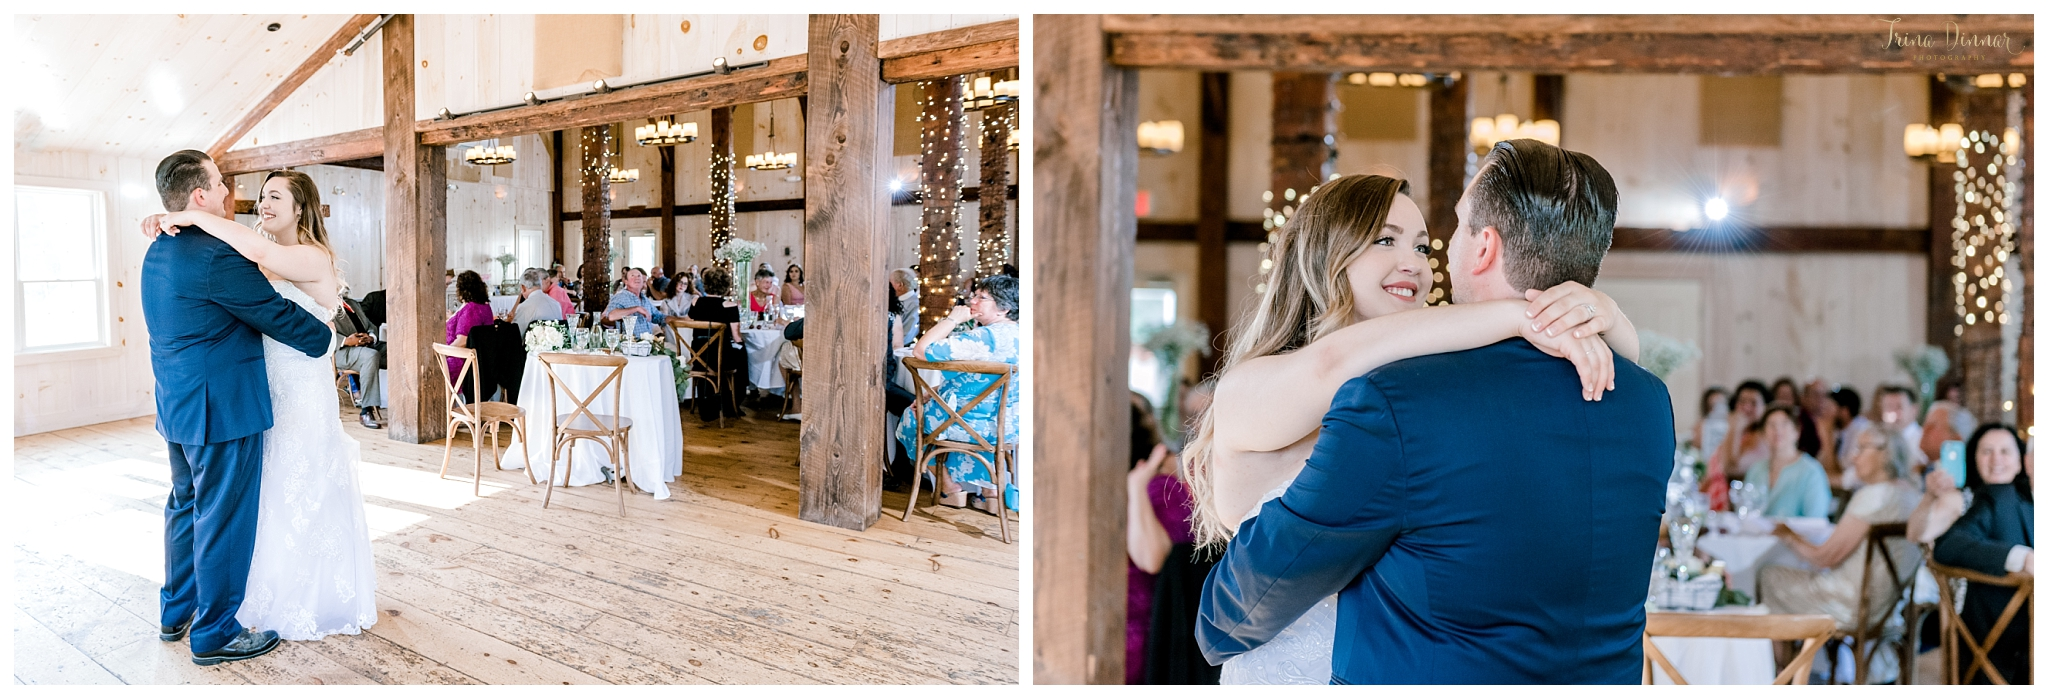 Bride and Groom's First Dance at the 1812 Farm in Bristol, Maine.